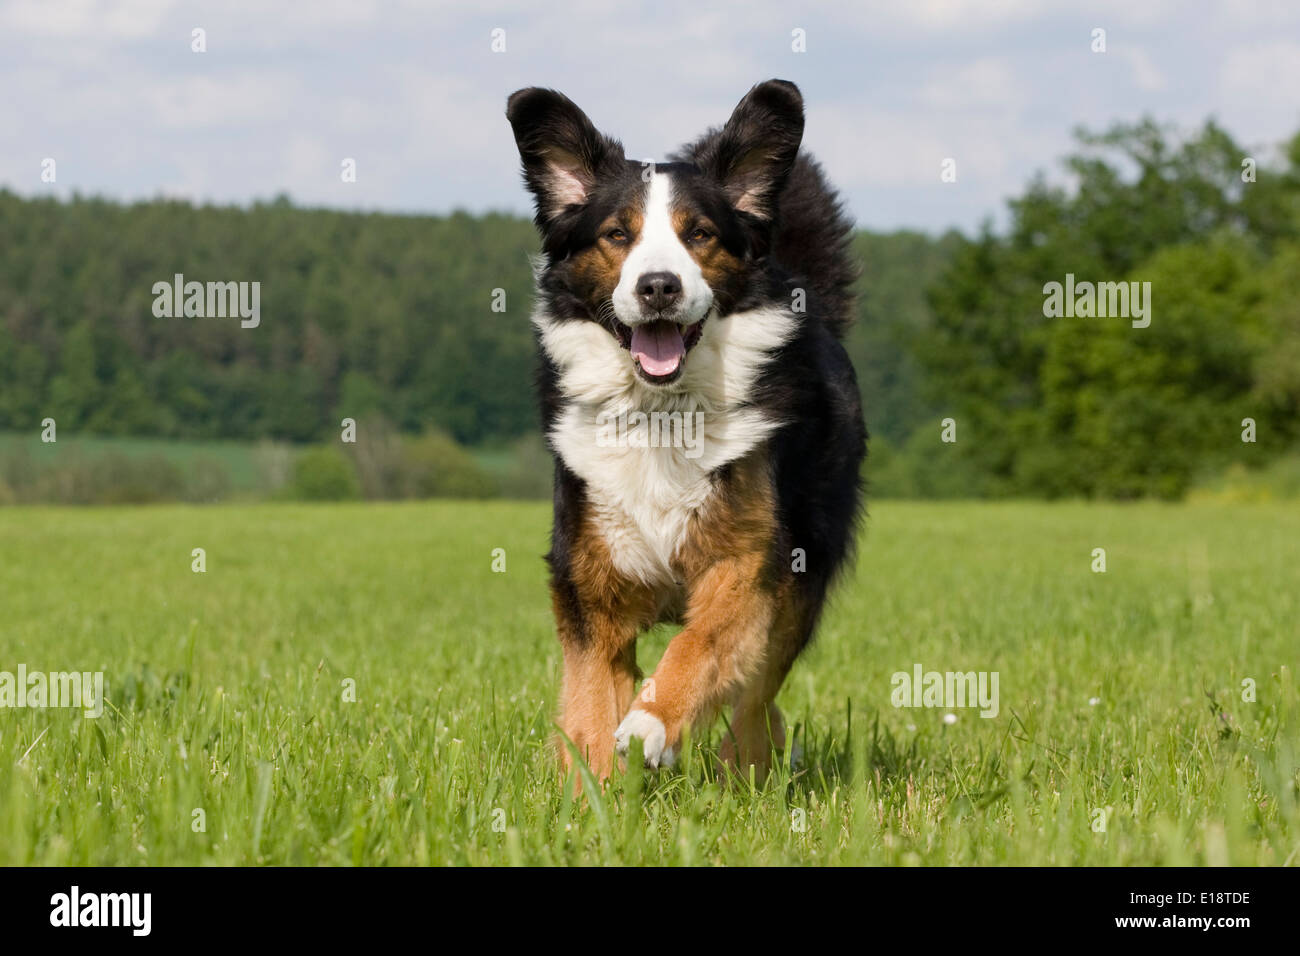 Bernese Mountain dog runs, jumps over a meadow Stock Photo